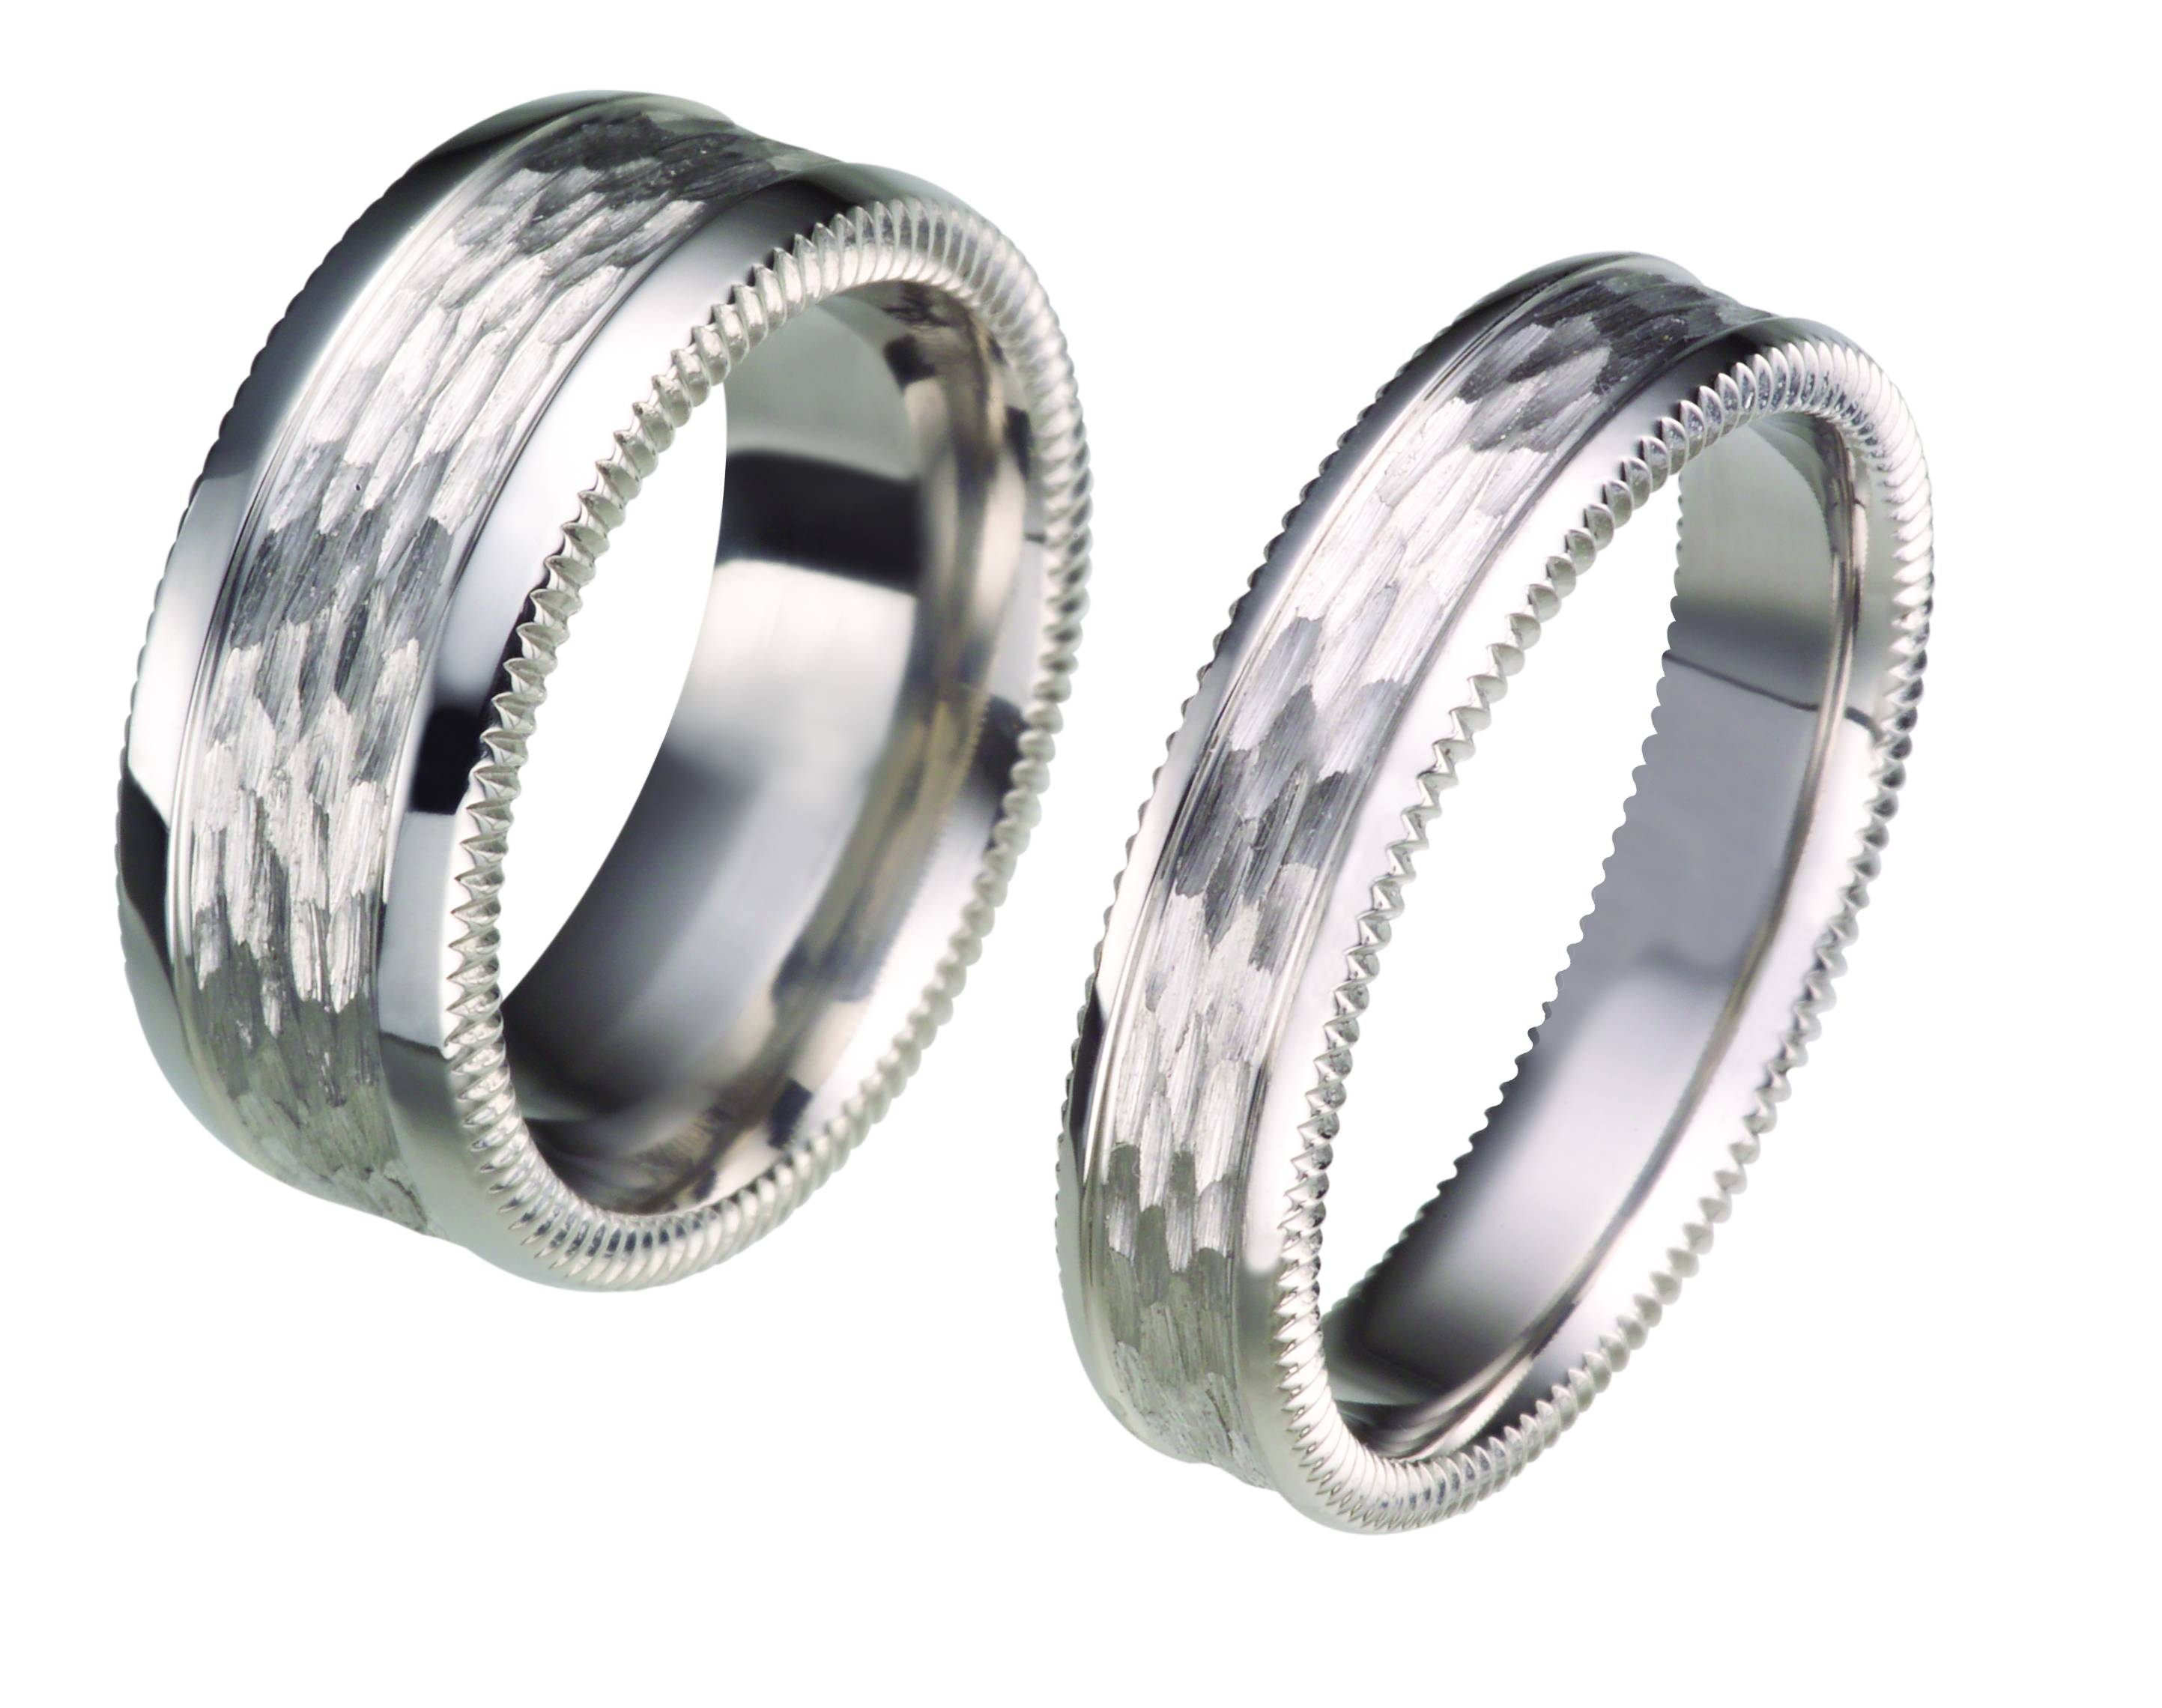 Wedding Rings : Mens Platinum Wedding Rings Female Wedding Rings Within Most Current Wedding Band Mens Platinum (View 9 of 15)